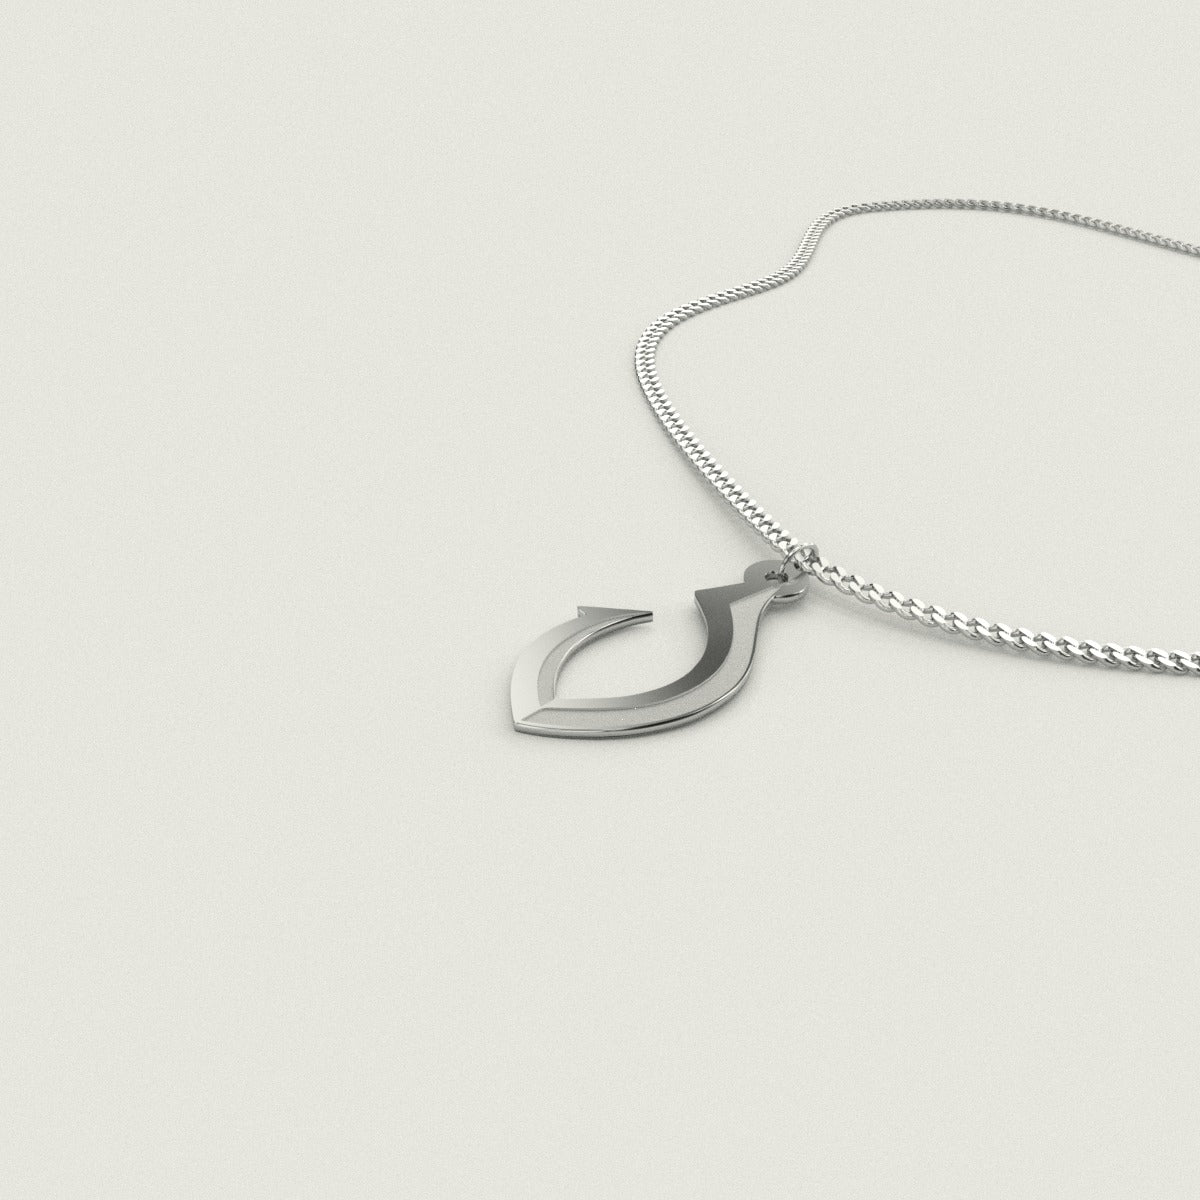 Guam CNMI Fish Hook Sterling Silver Necklace